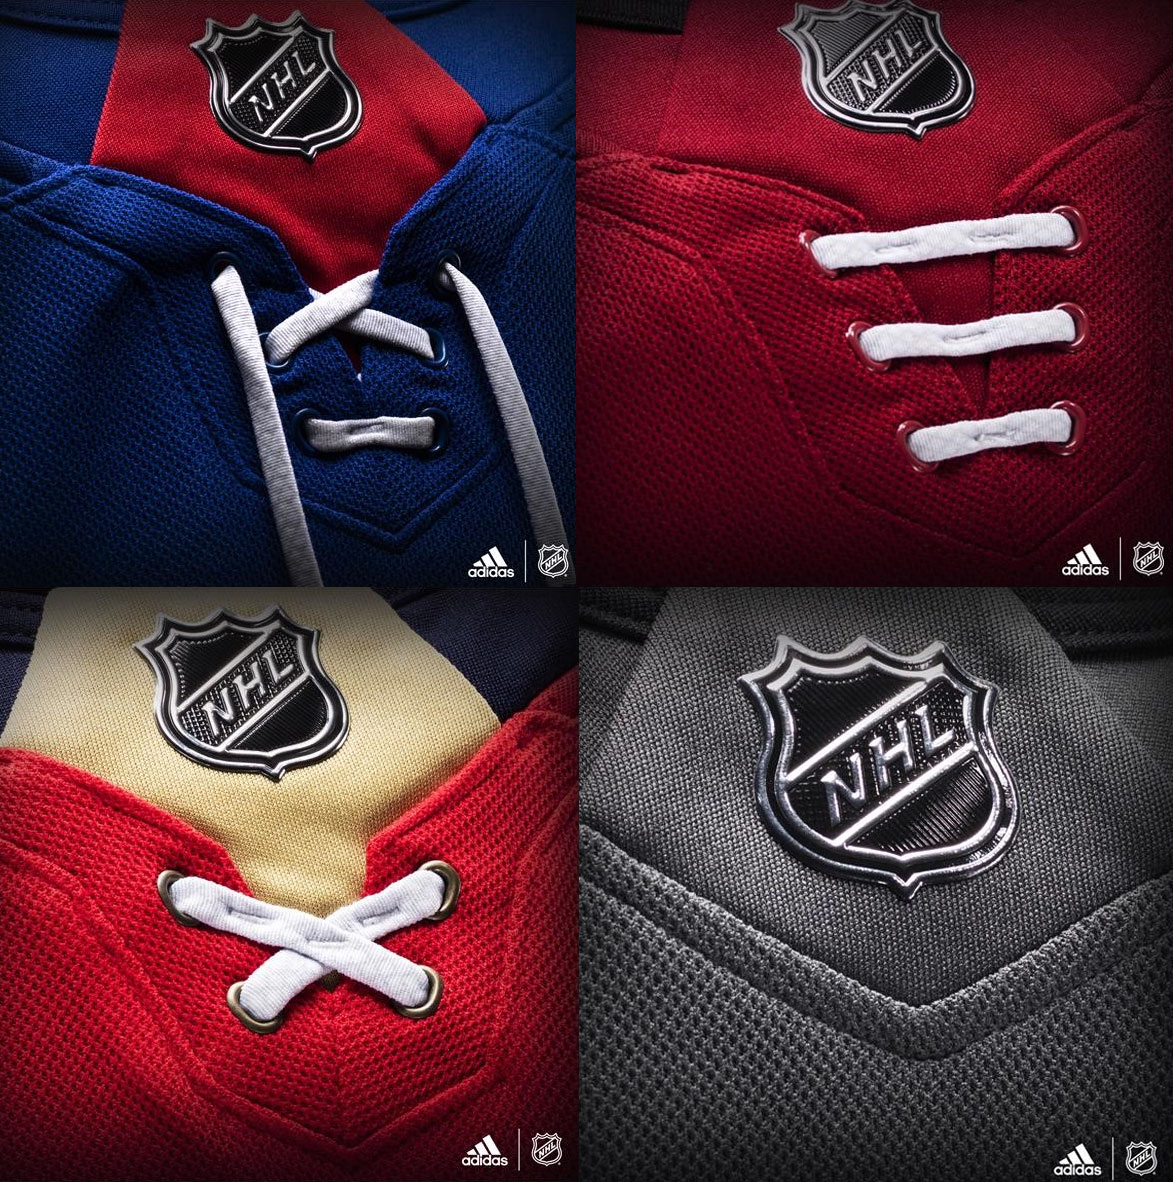 Adidas Unveils A New Look for the NHL – SportsLogos.Net News